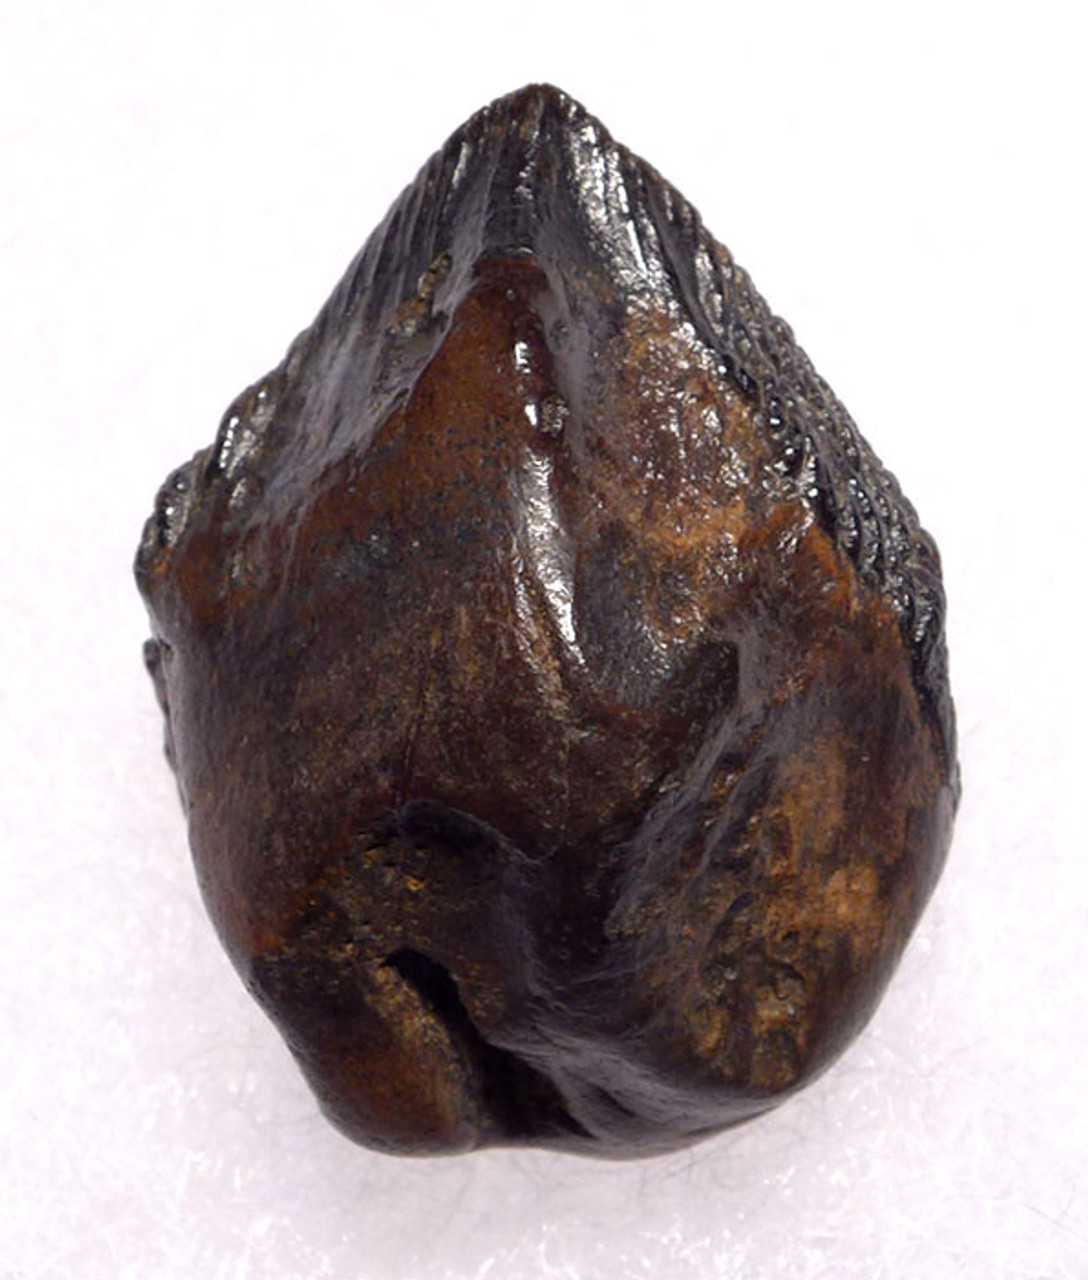 DT19-060 - HUGE FINEST QUALITY TRICERATOPS DINOSAUR TOOTH FULL CROWN